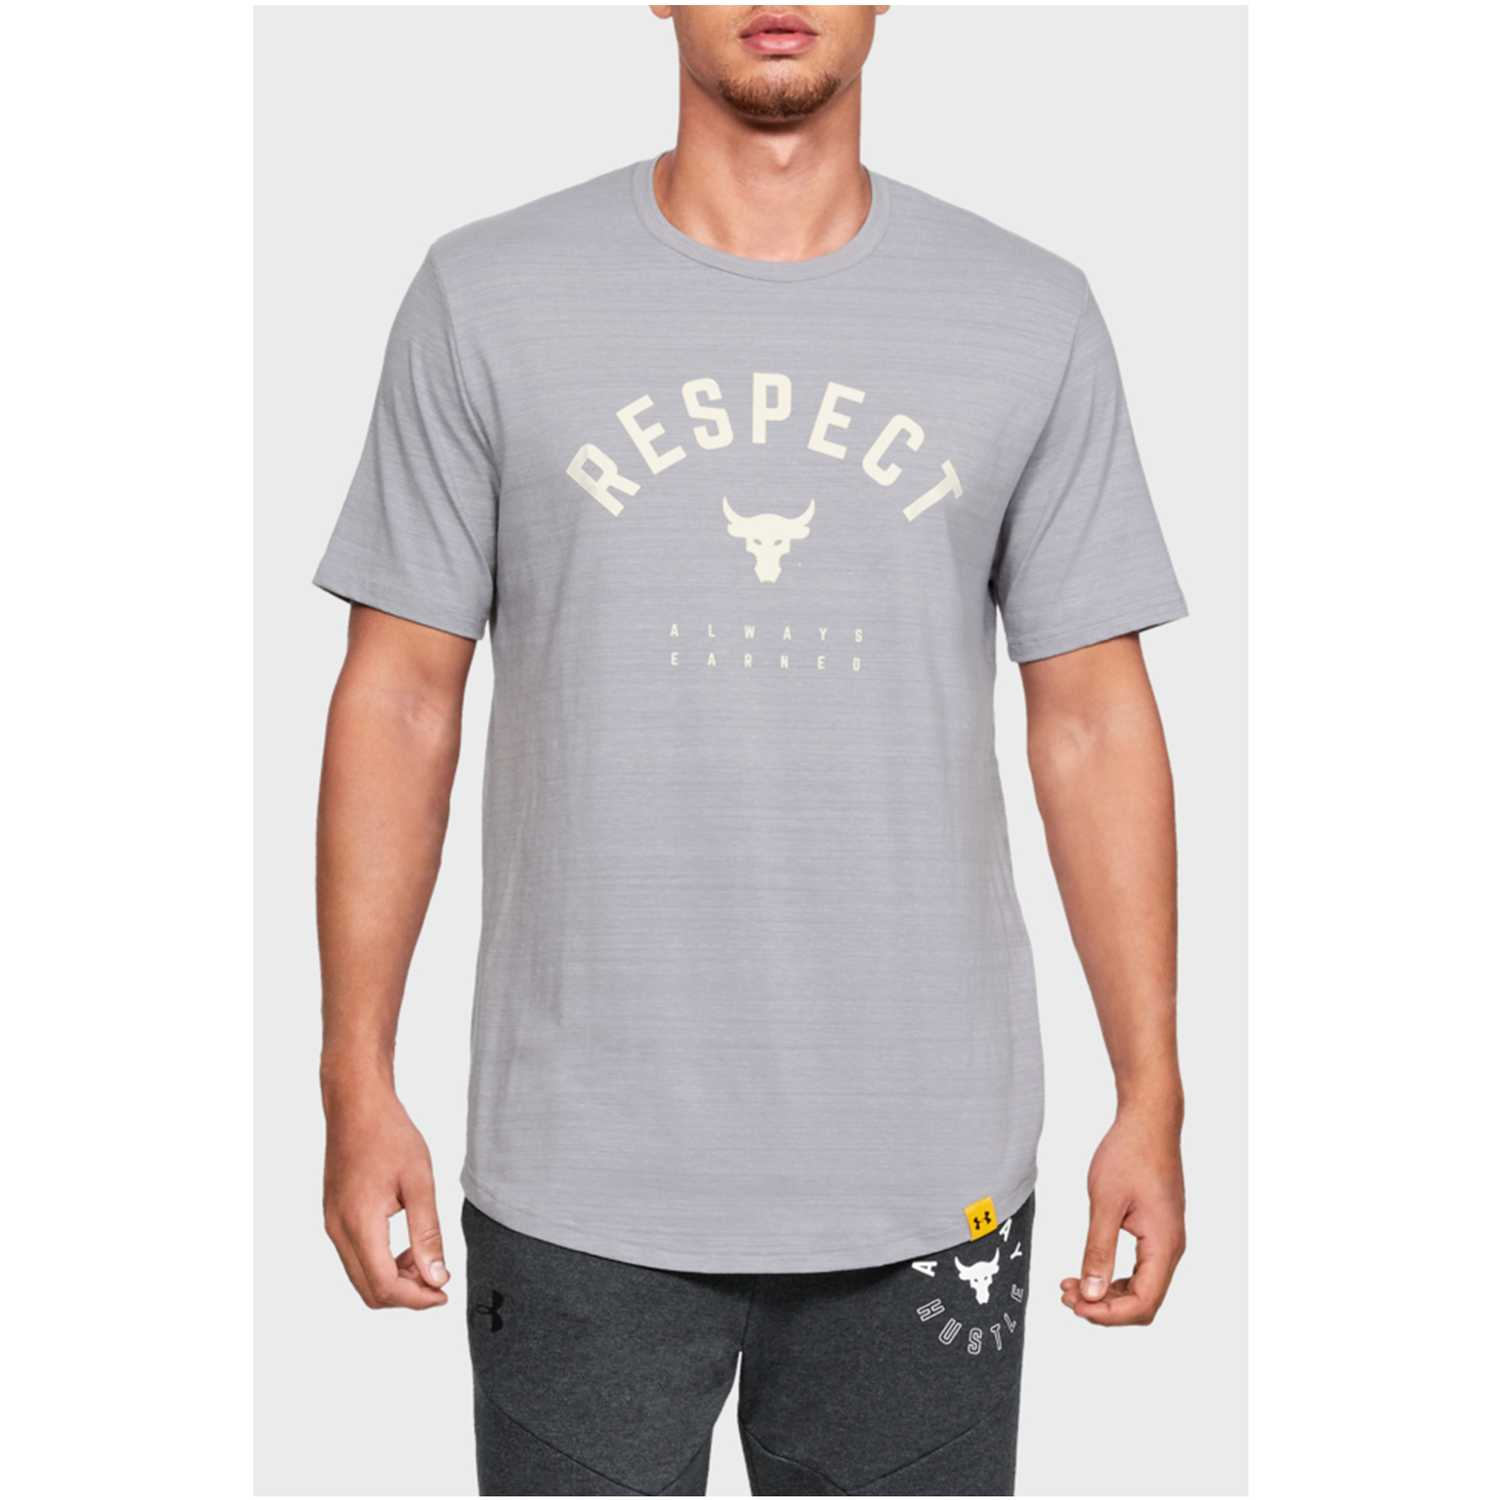 Under Armour project rock respect tee-gry Gris Camisetas y Polos Deportivos